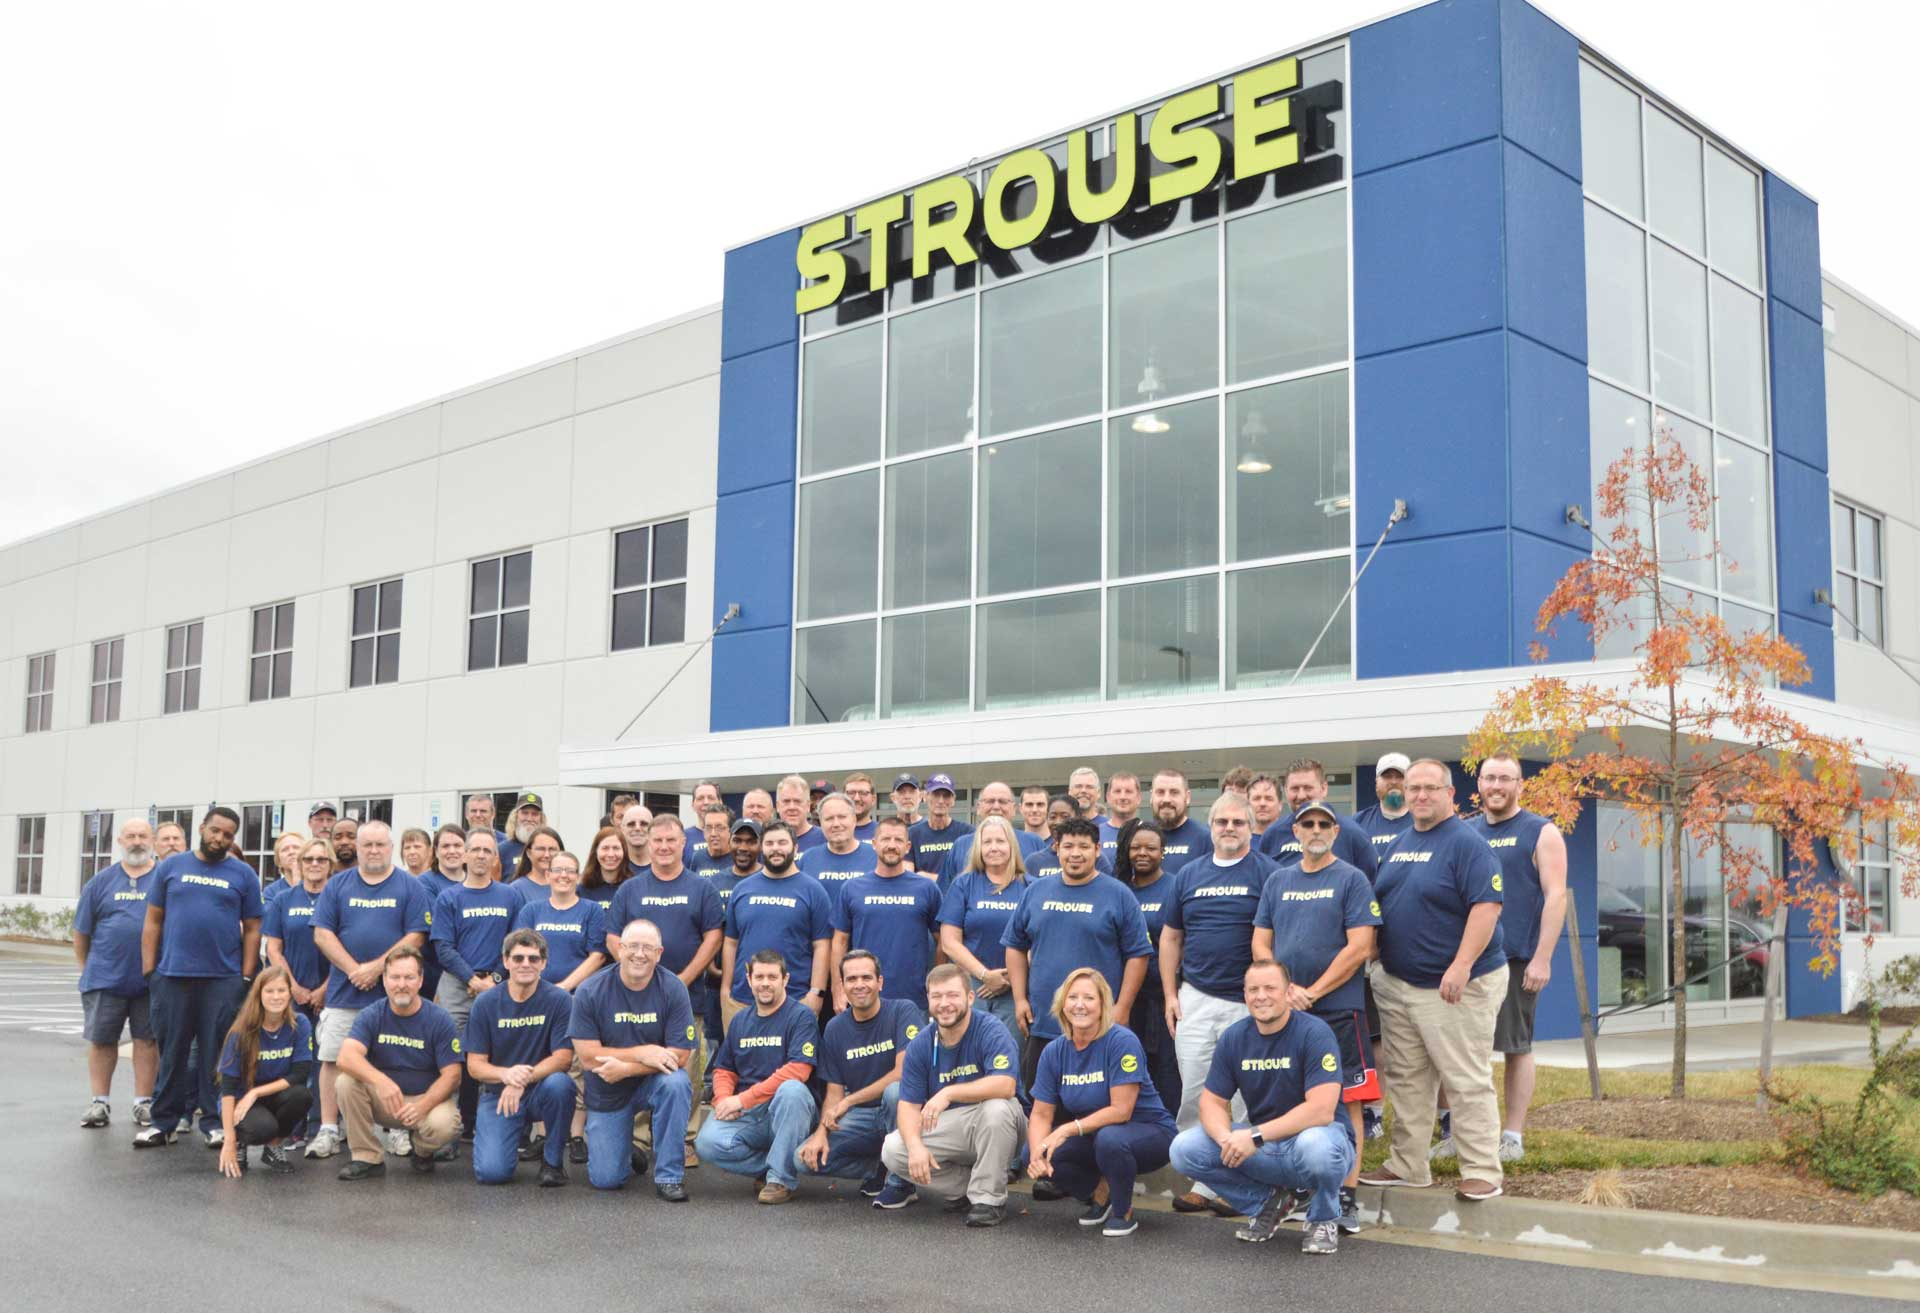 strouse_building_and_employees